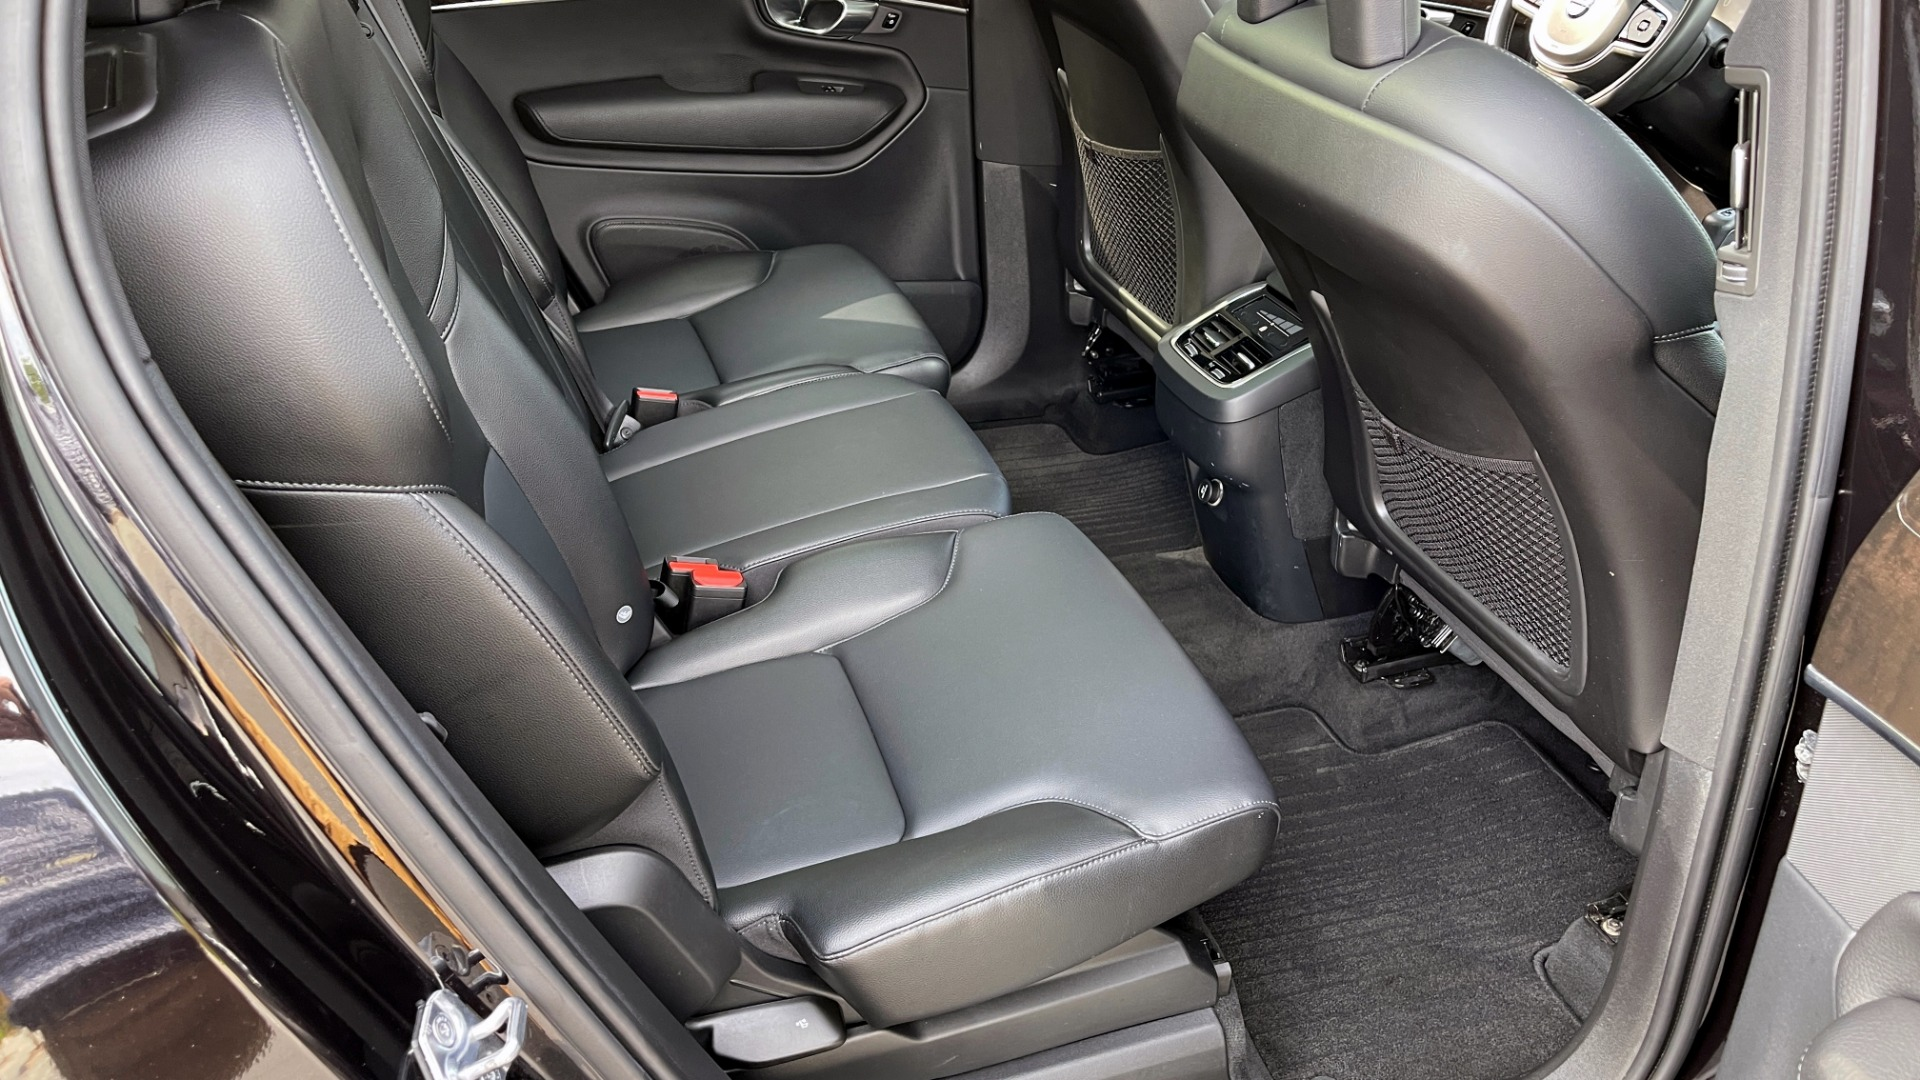 Used 2018 Volvo XC90 T5 AWD MOMENTUM PLUS / NAV / SUNROOF / 3-ROW / REARVIEW for sale $40,295 at Formula Imports in Charlotte NC 28227 73